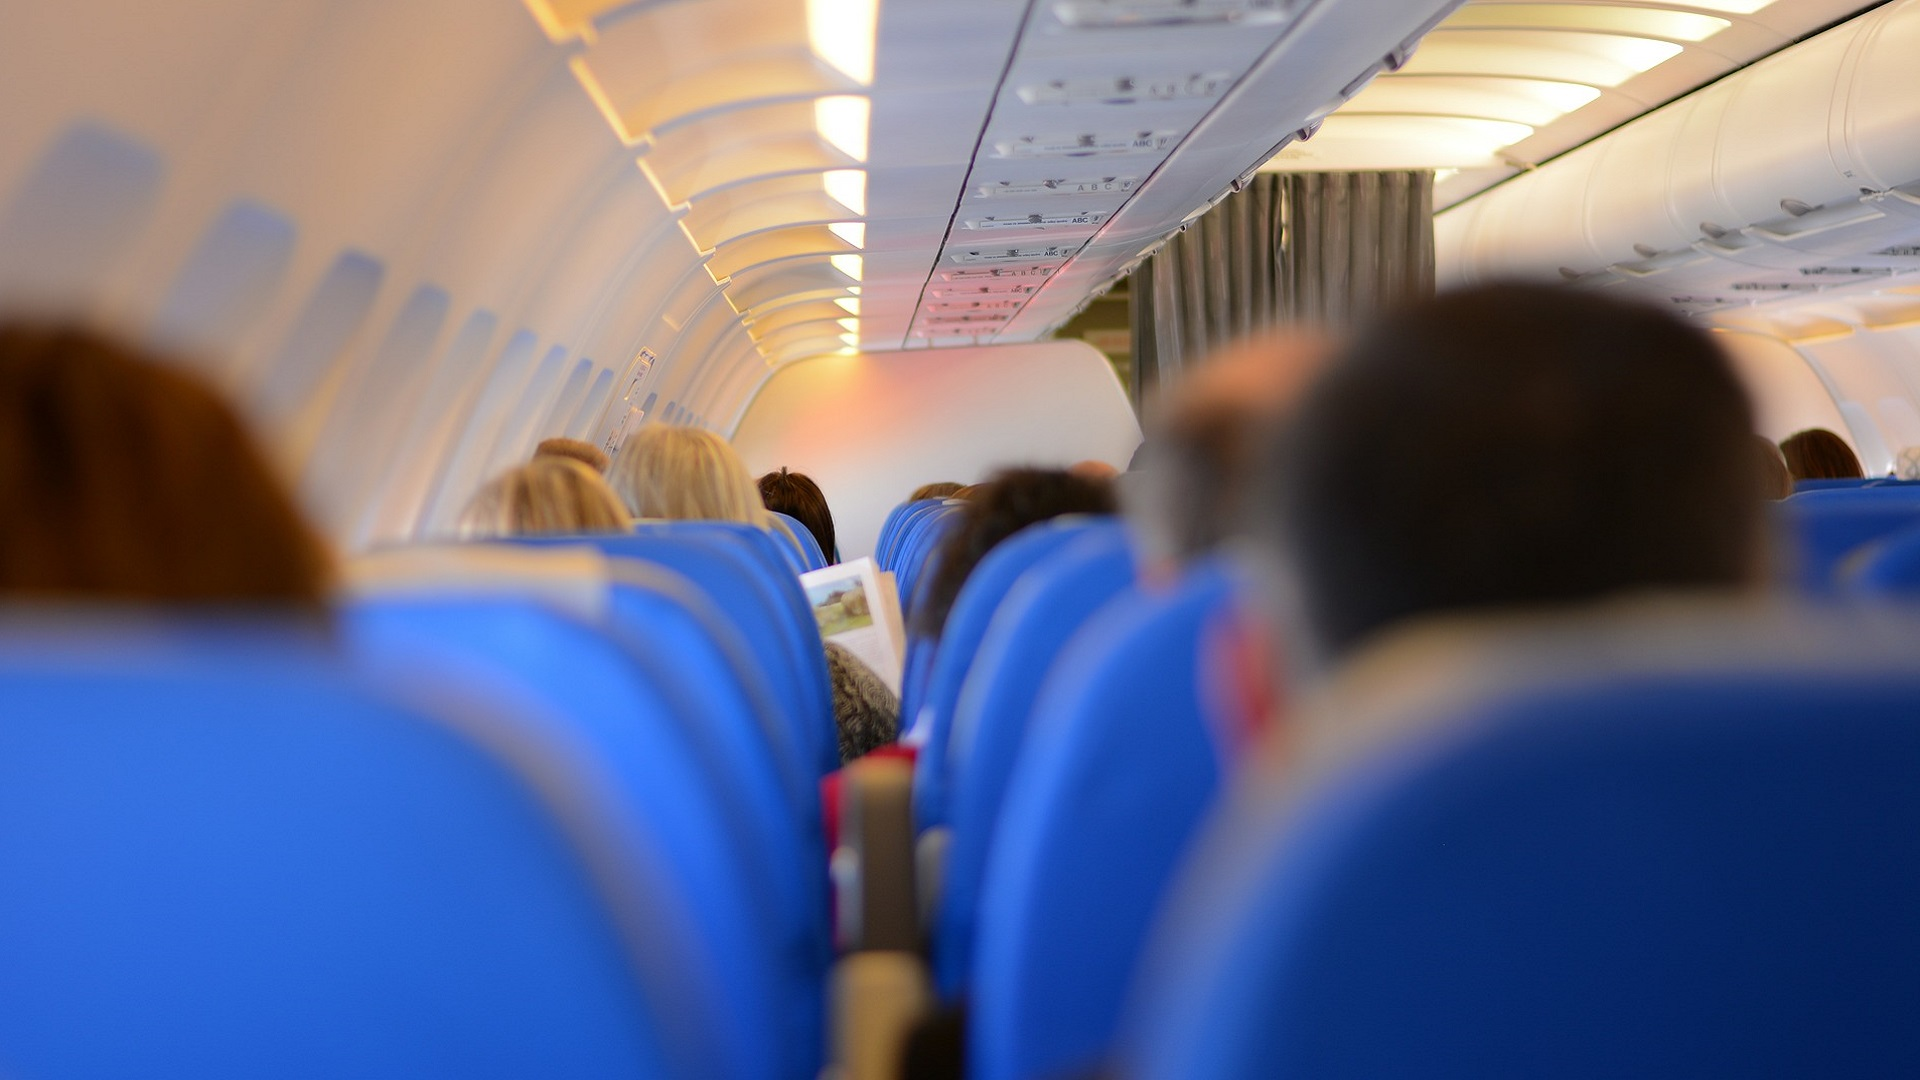 photo Where to sit on an airplane to avoid catching a cold